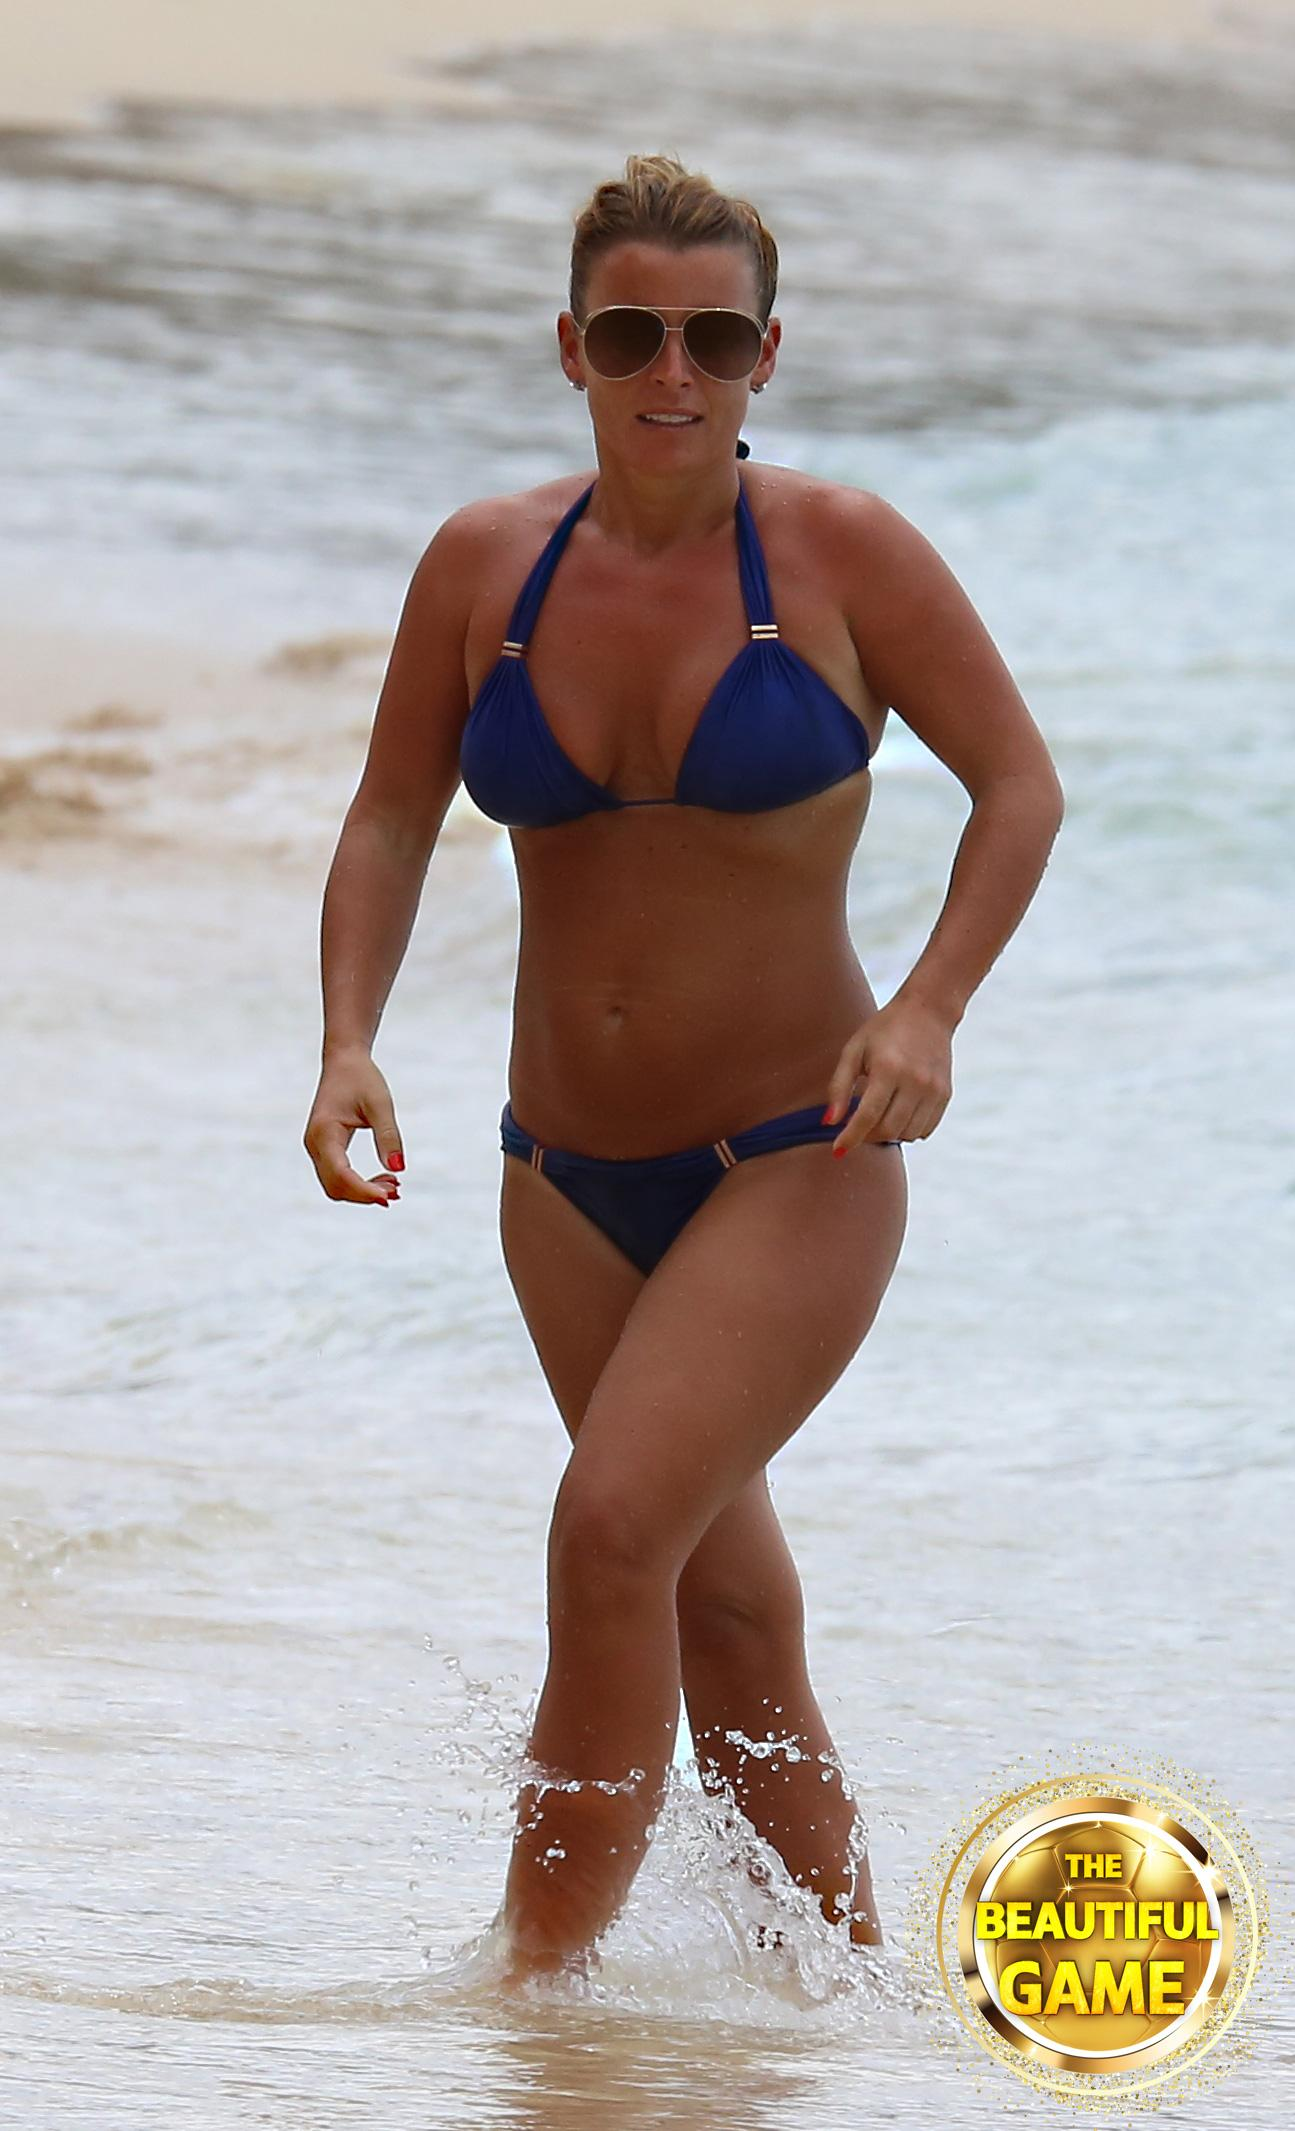 Coleen Rooney will also be bidding farewell at Wembley on Thursday